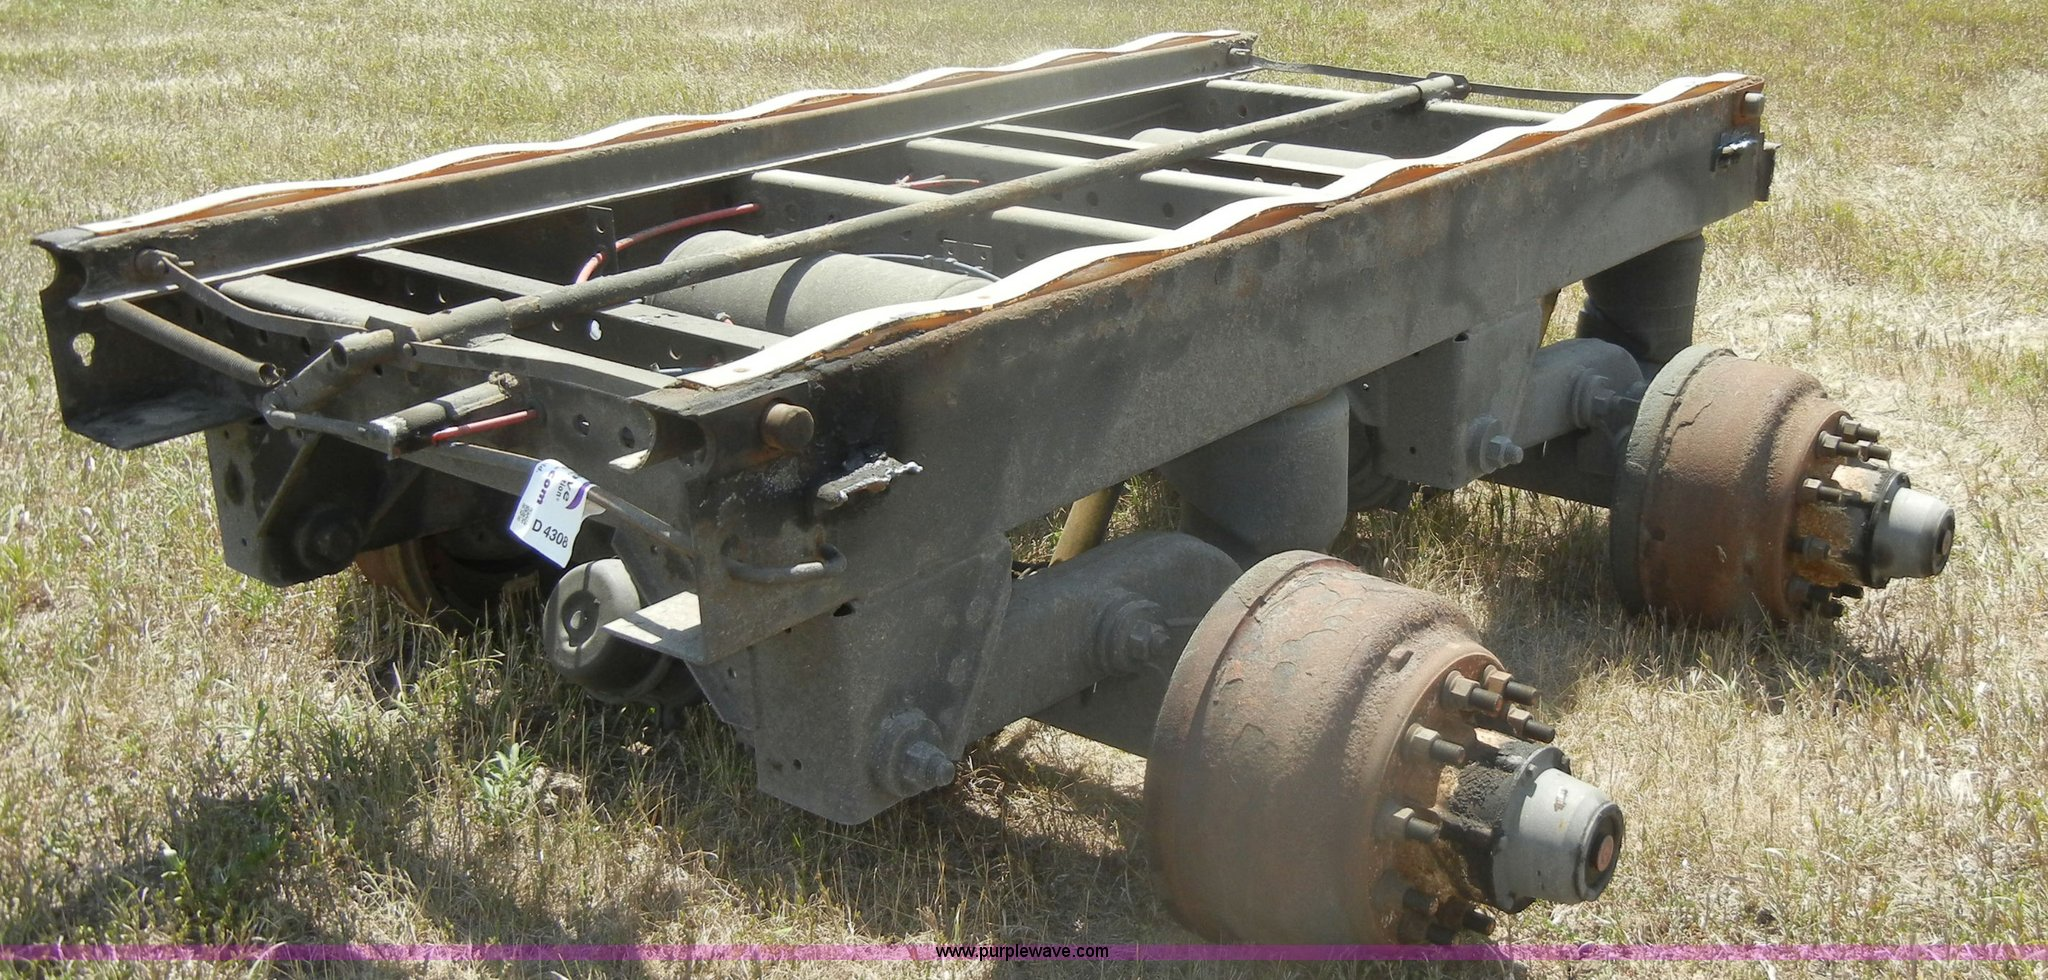 New Way air ride axle frame | Item D4308 | SOLD! August 22 M...